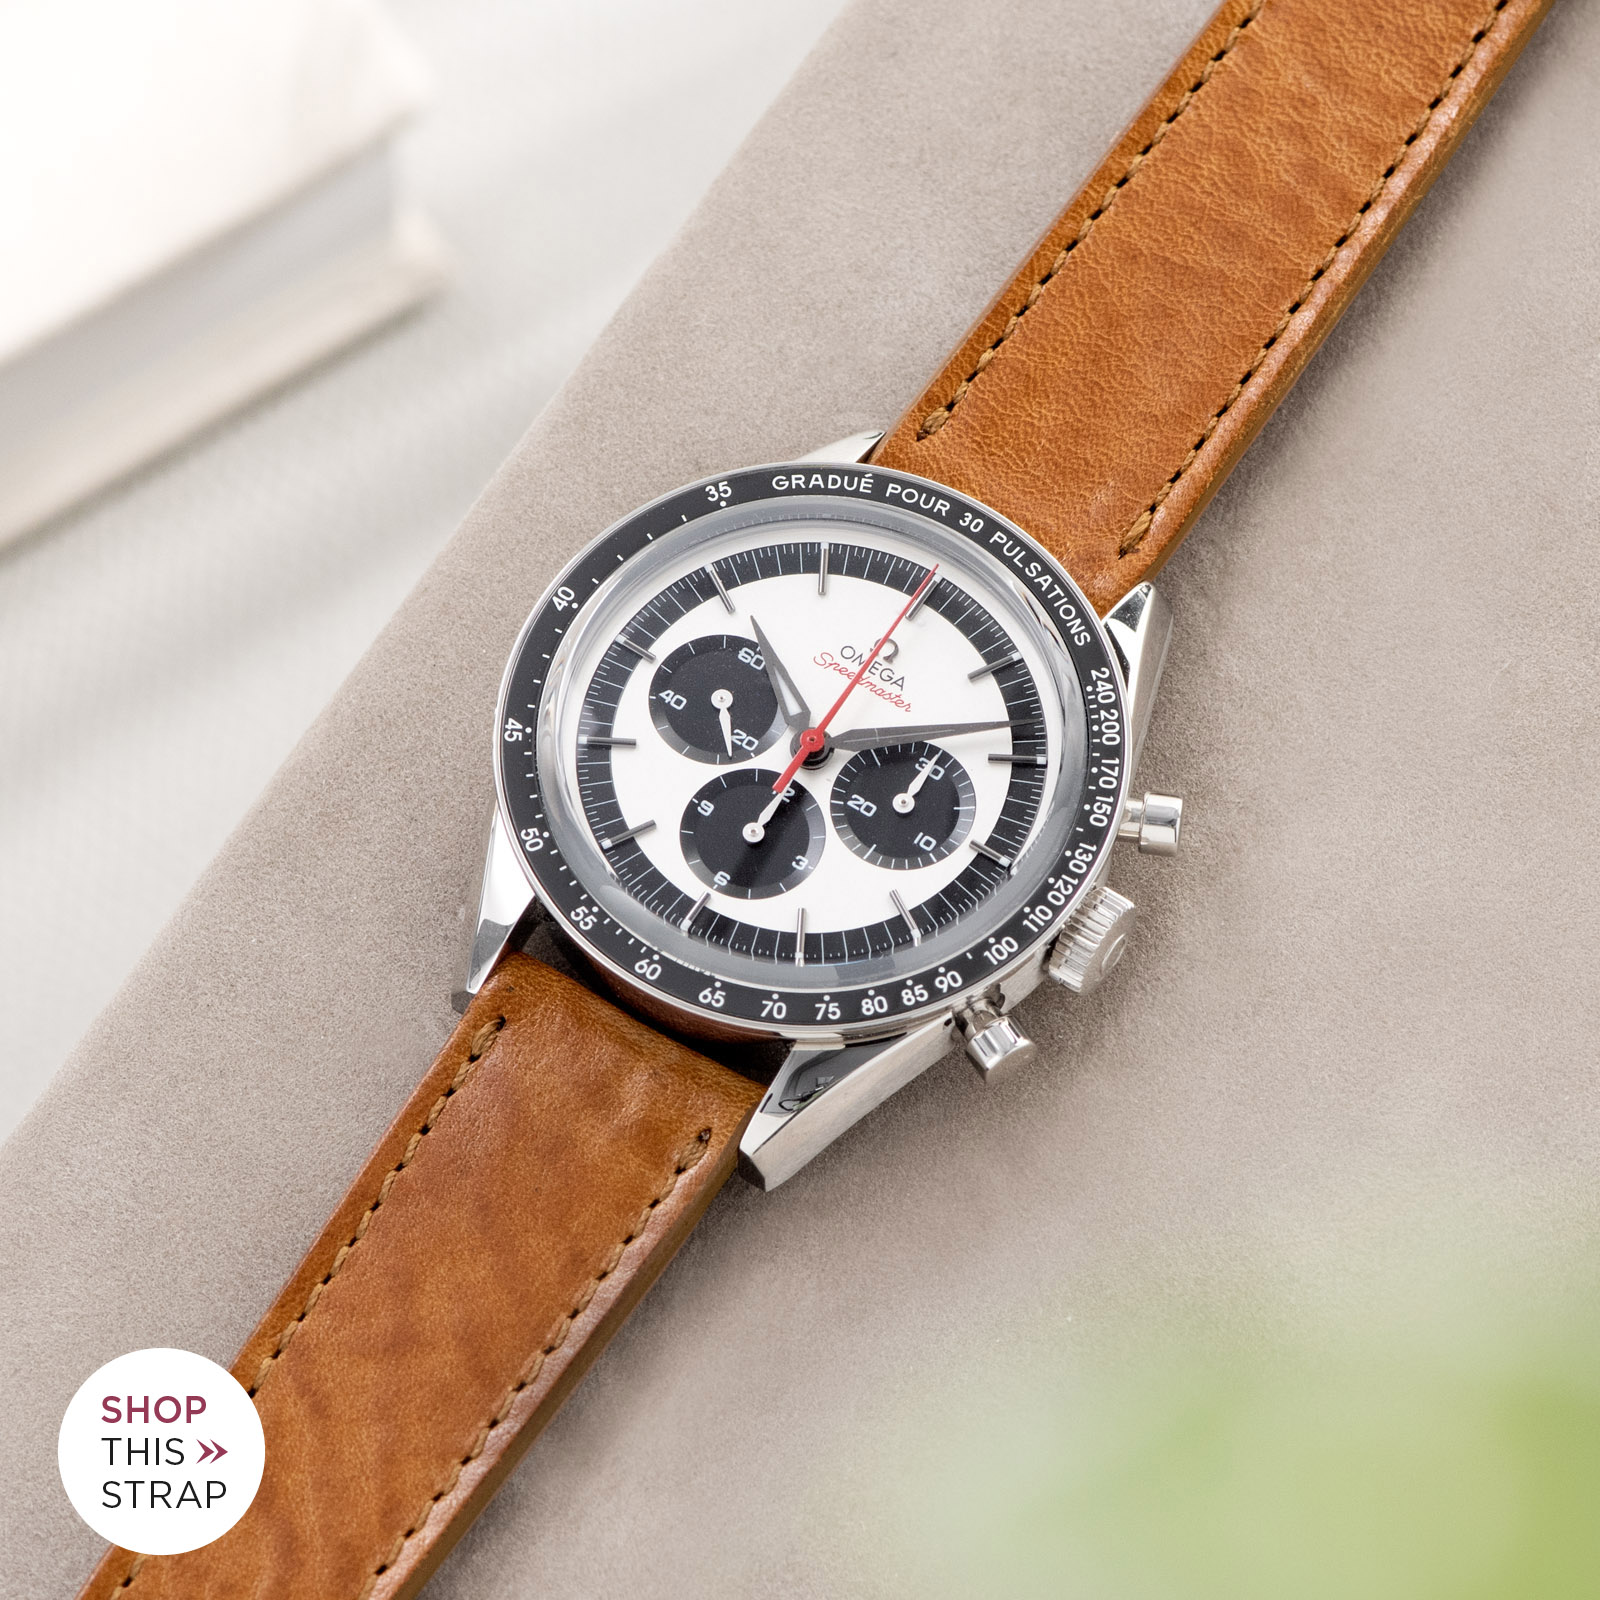 Bulang and Sons_Strap Guide_Omega Speedmaster 2998_Gilt Brown Tonal Leather Watch Strap